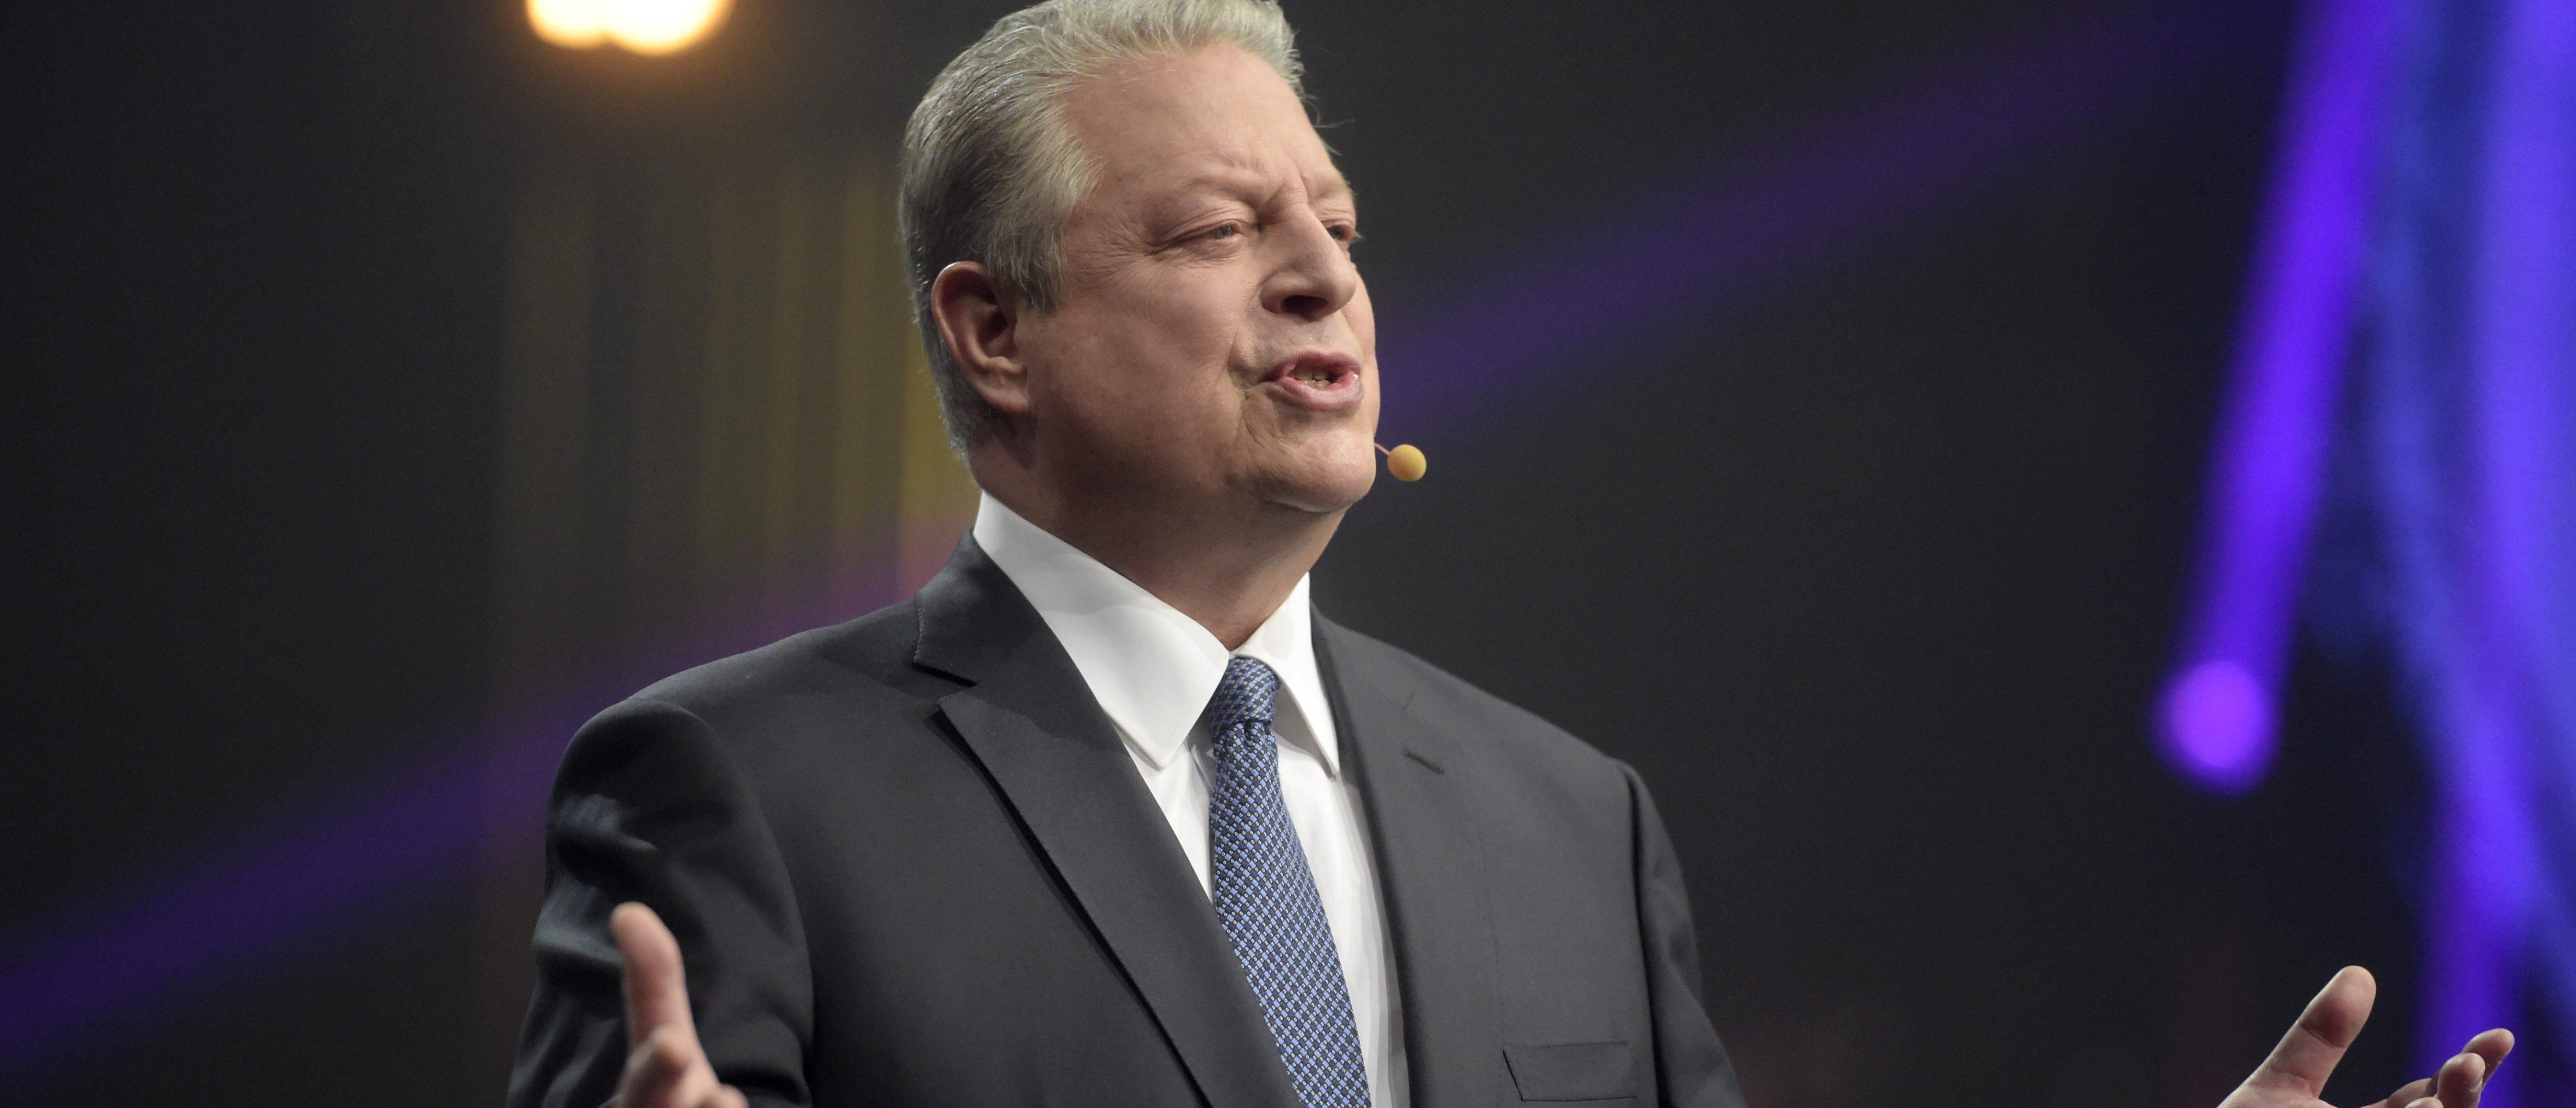 Former Vice President of the United States, Co-founder and Chairman of Generation Investment Management, Senior partner at KPCB Al Gore speaks during Slush 2017 startup and technology event in Helsinki, Finland, on November 30, 2017. Lehtikuva/Vesa Moilanen/via Reuters